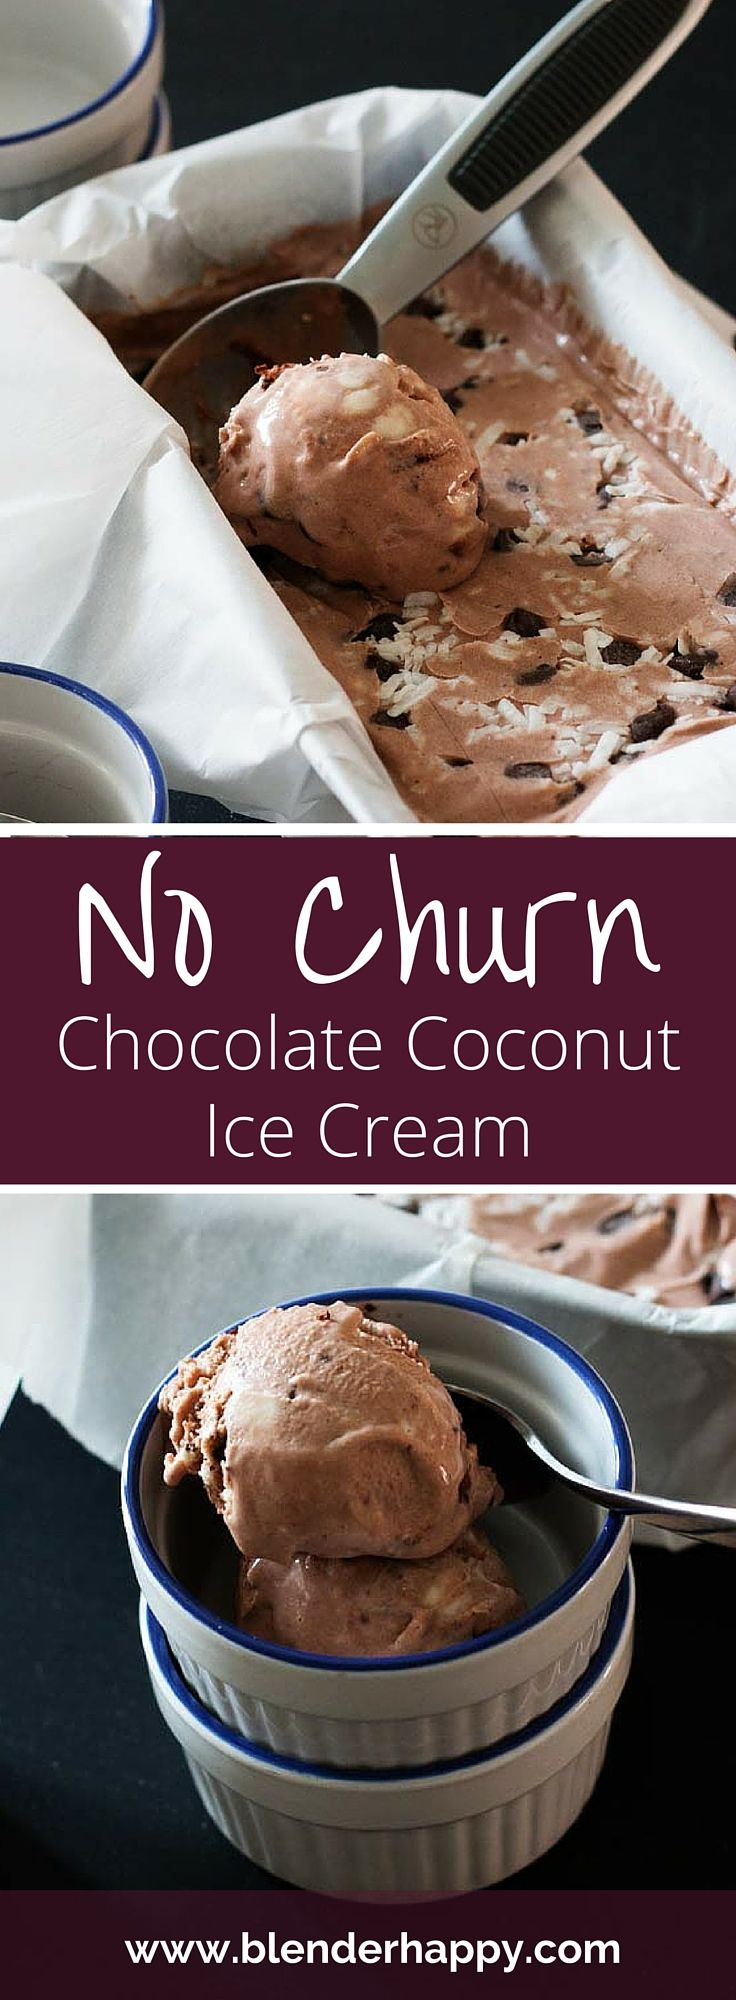 No churn Chocolate Coconut Ice Cream is creamy, delicious and oh so ...